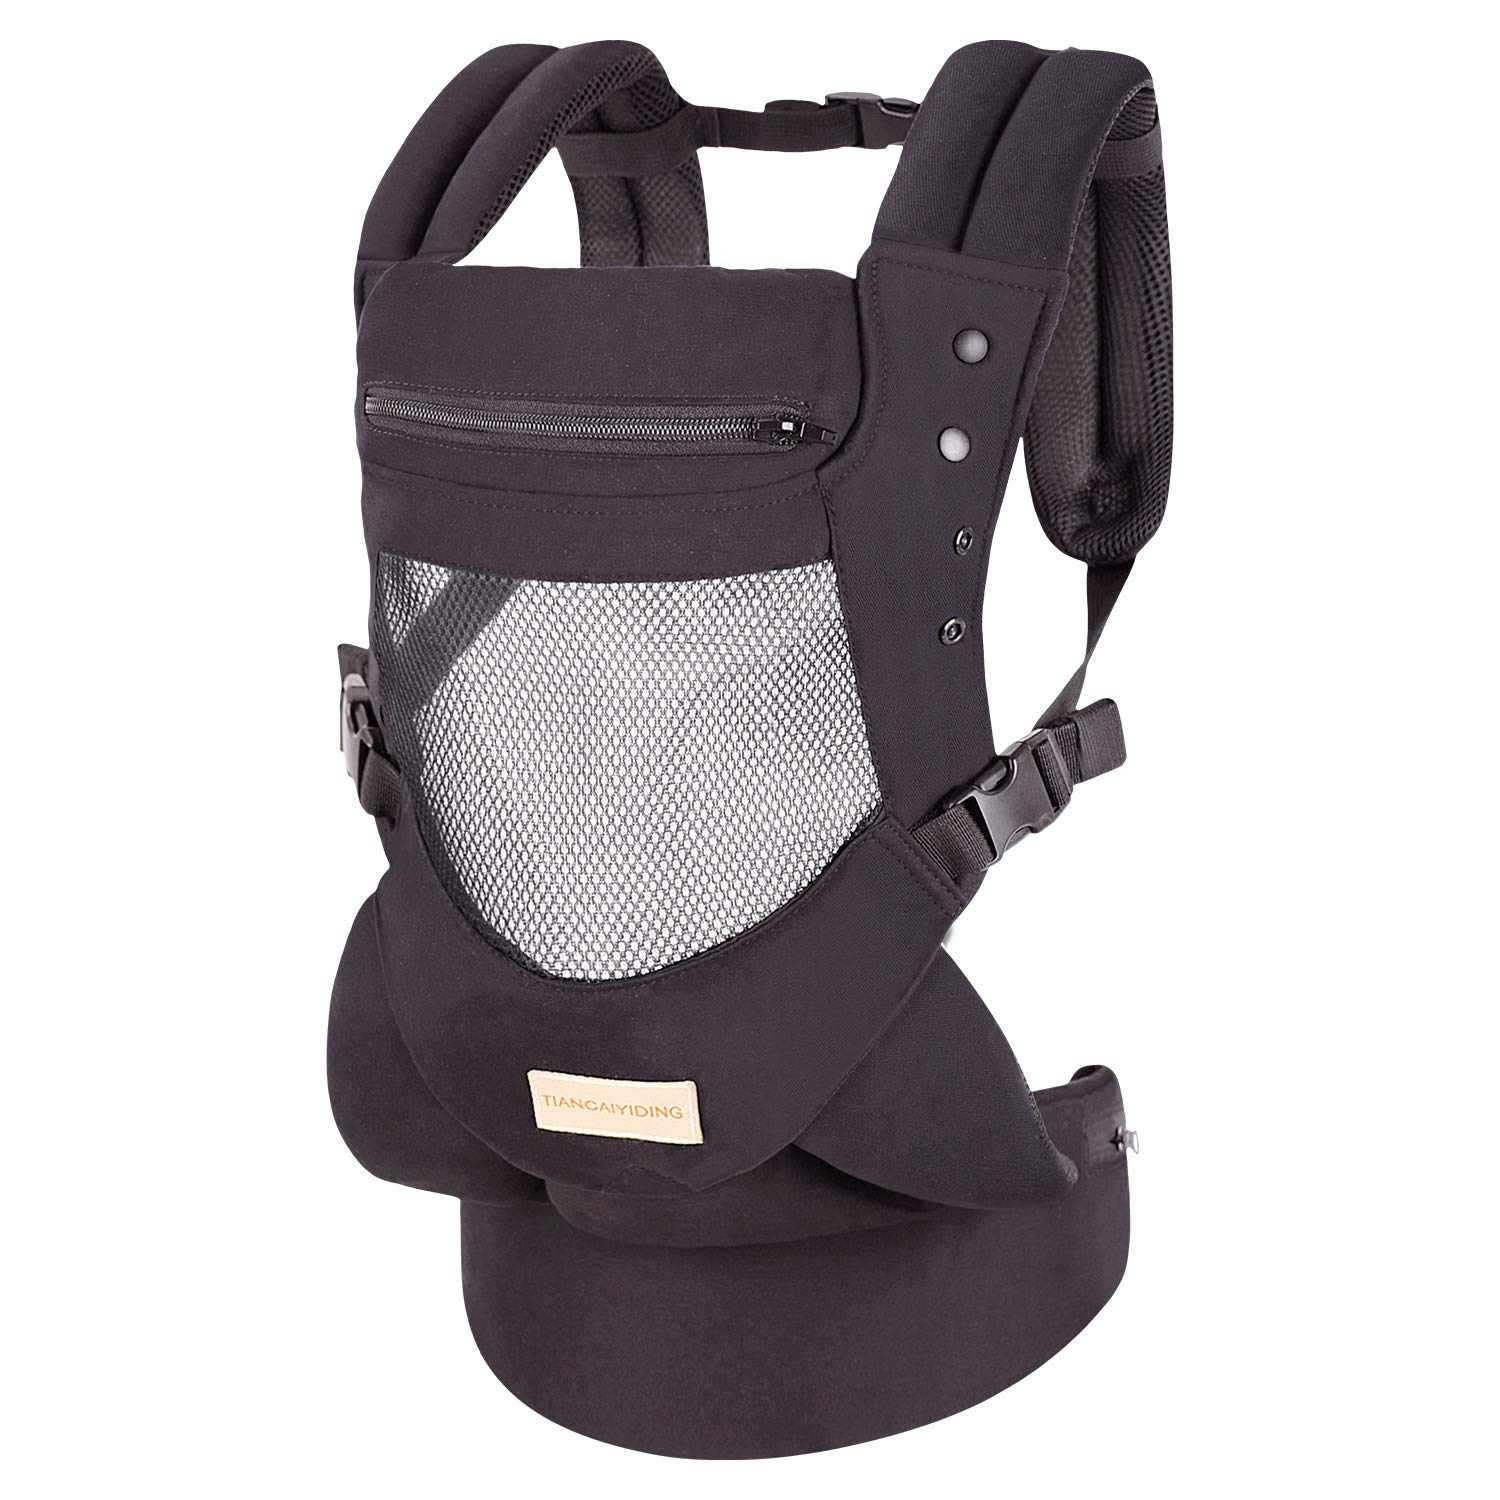 Infant Toddler Baby Carrier Wrap Backpack Front and Back, Hip Seat Hood, Soft Breathable Cotton, Cool Air Mesh, Black